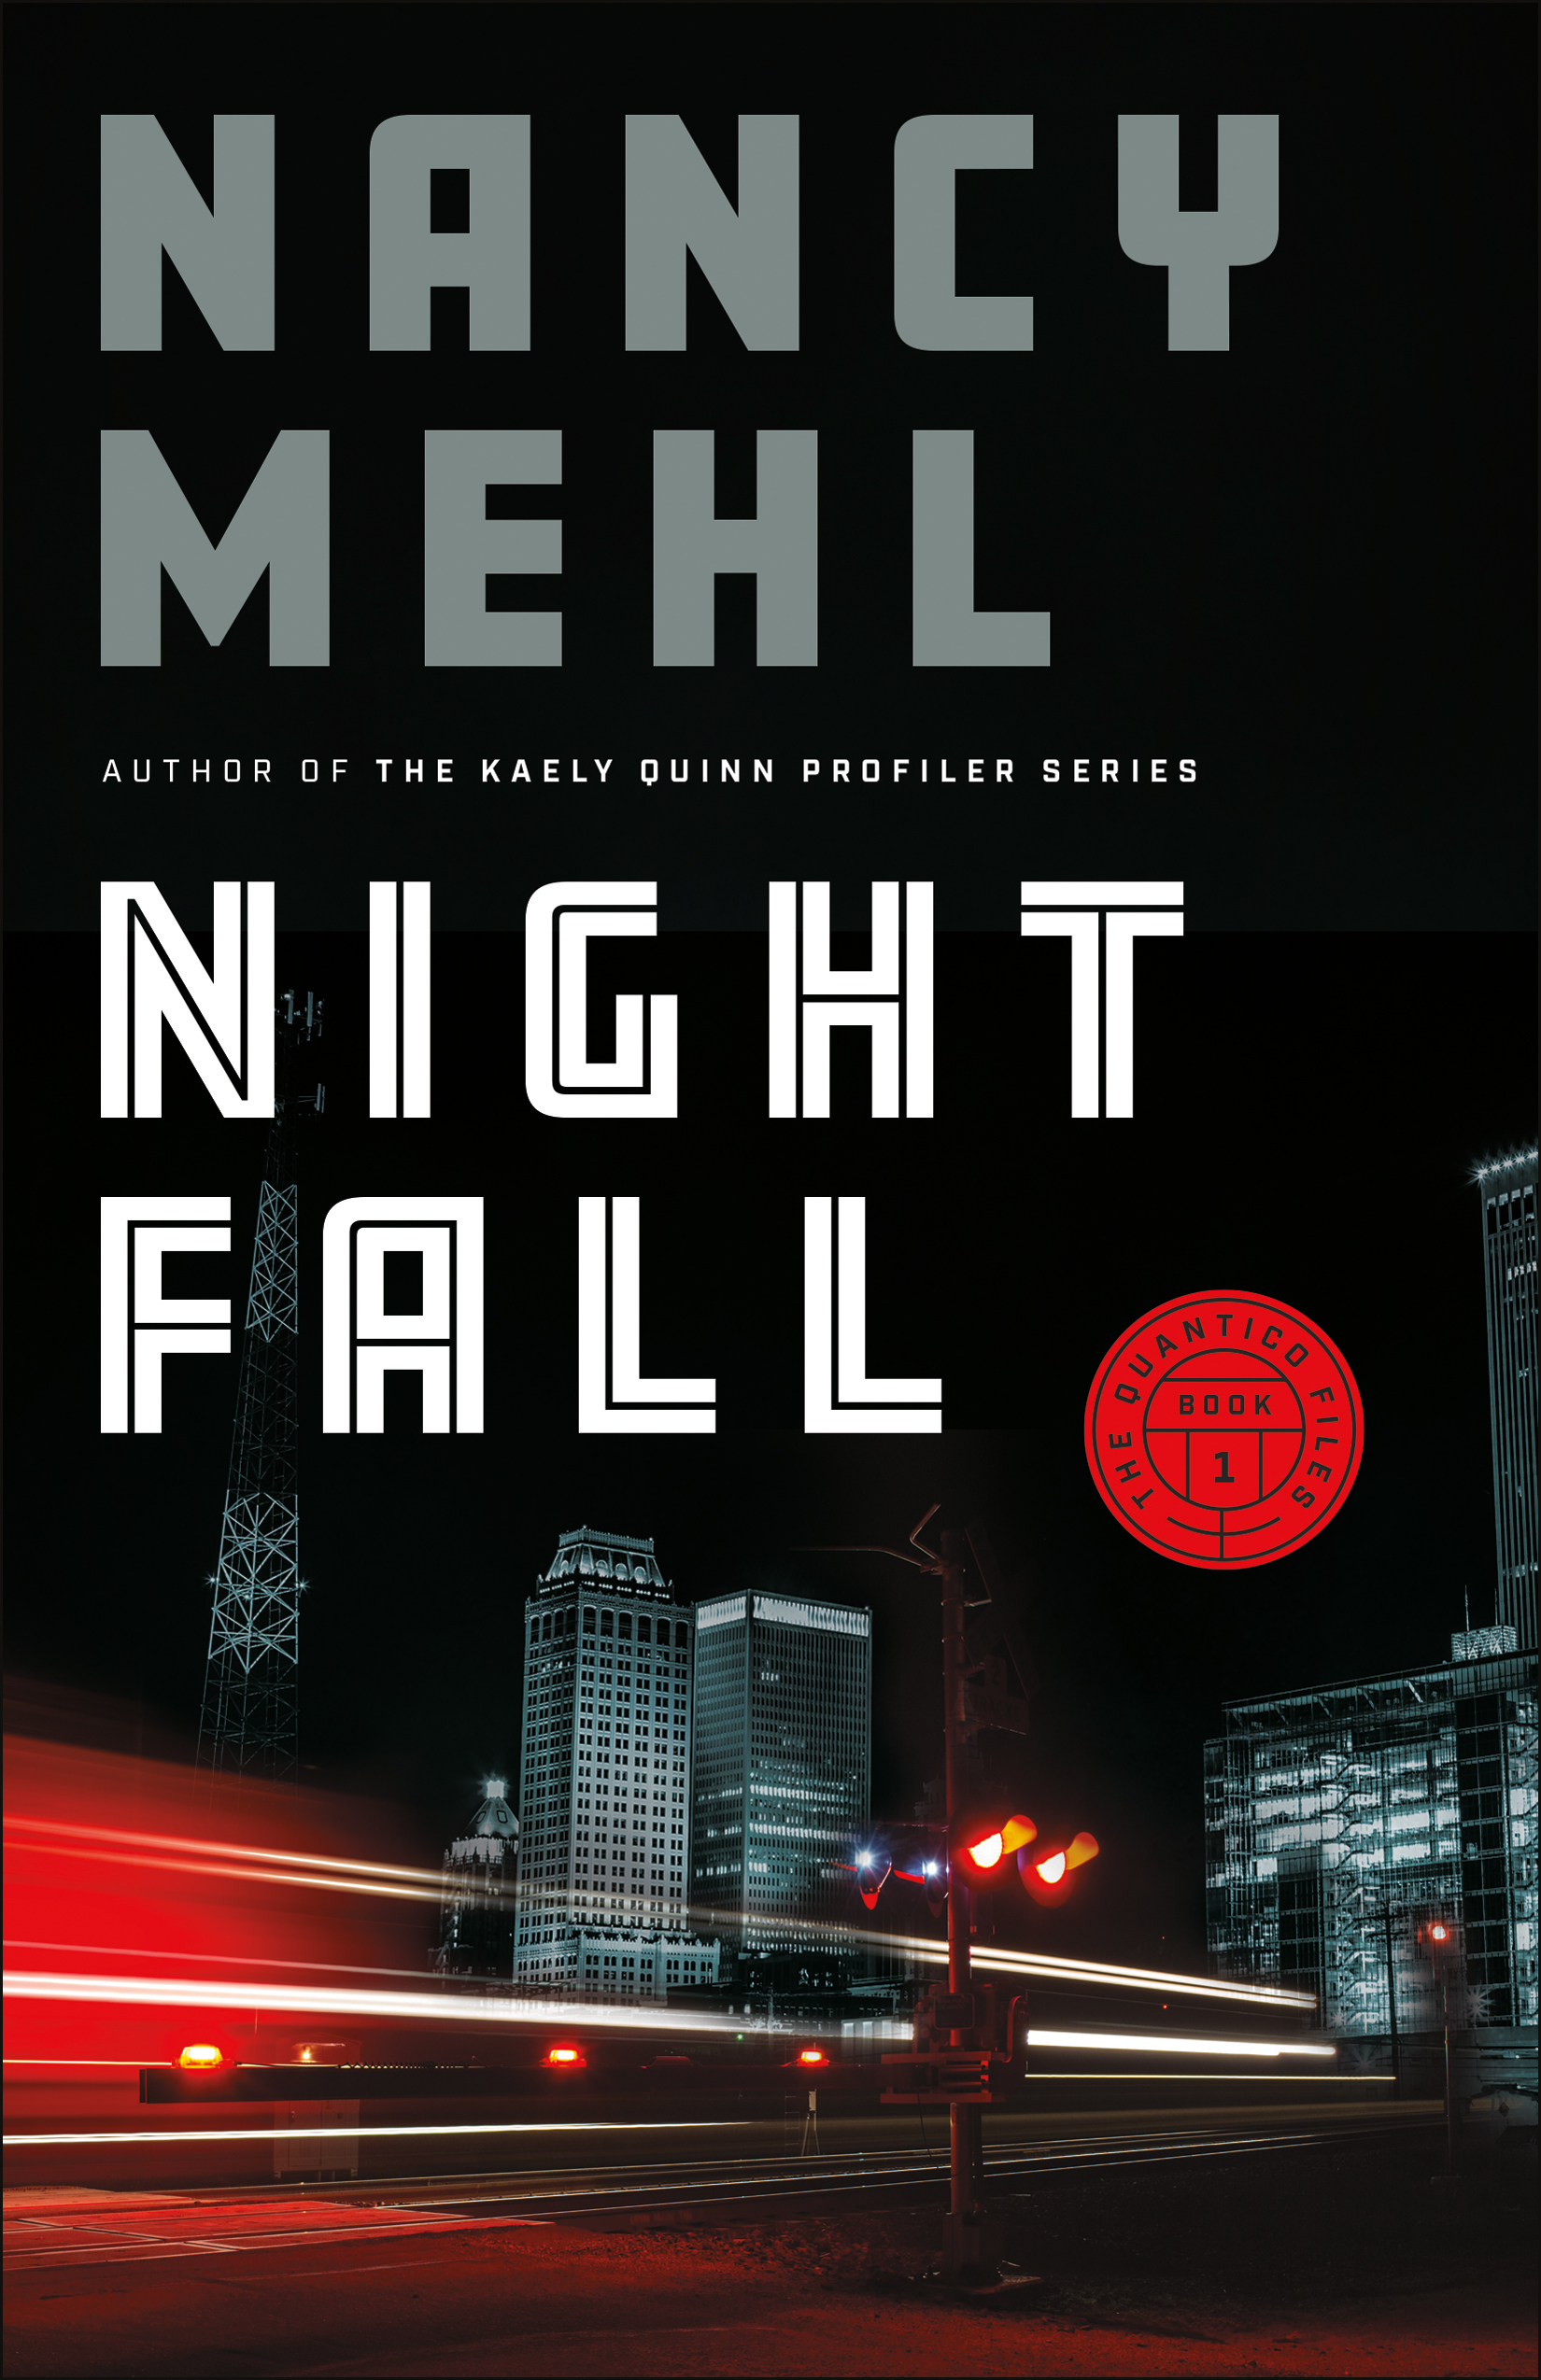 Night Fall by Nancy Mehl